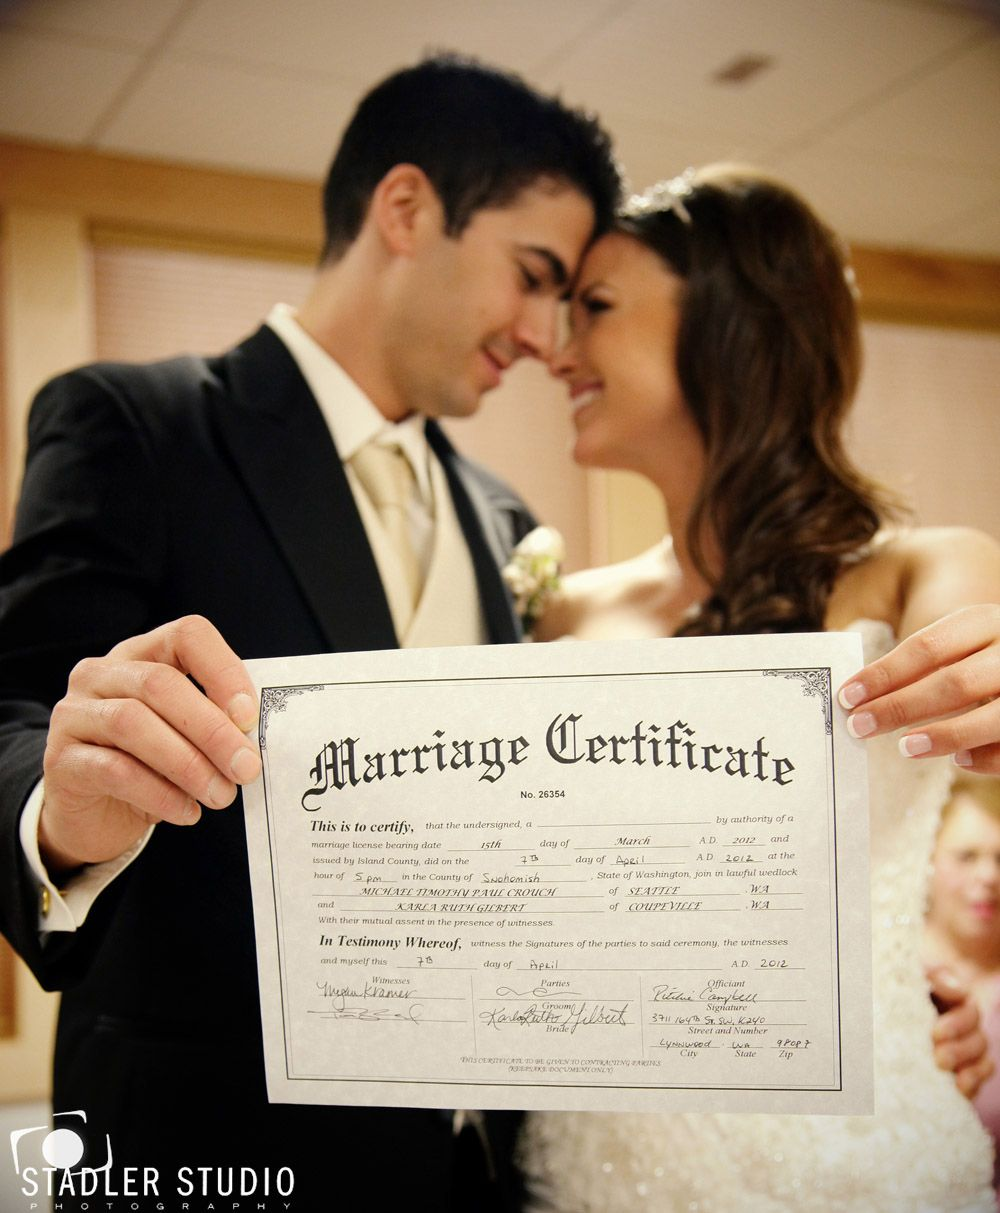 Marriage Certificate Photo, Events by L, Wedding Planners, Wedding Planning, Tips, Tricks